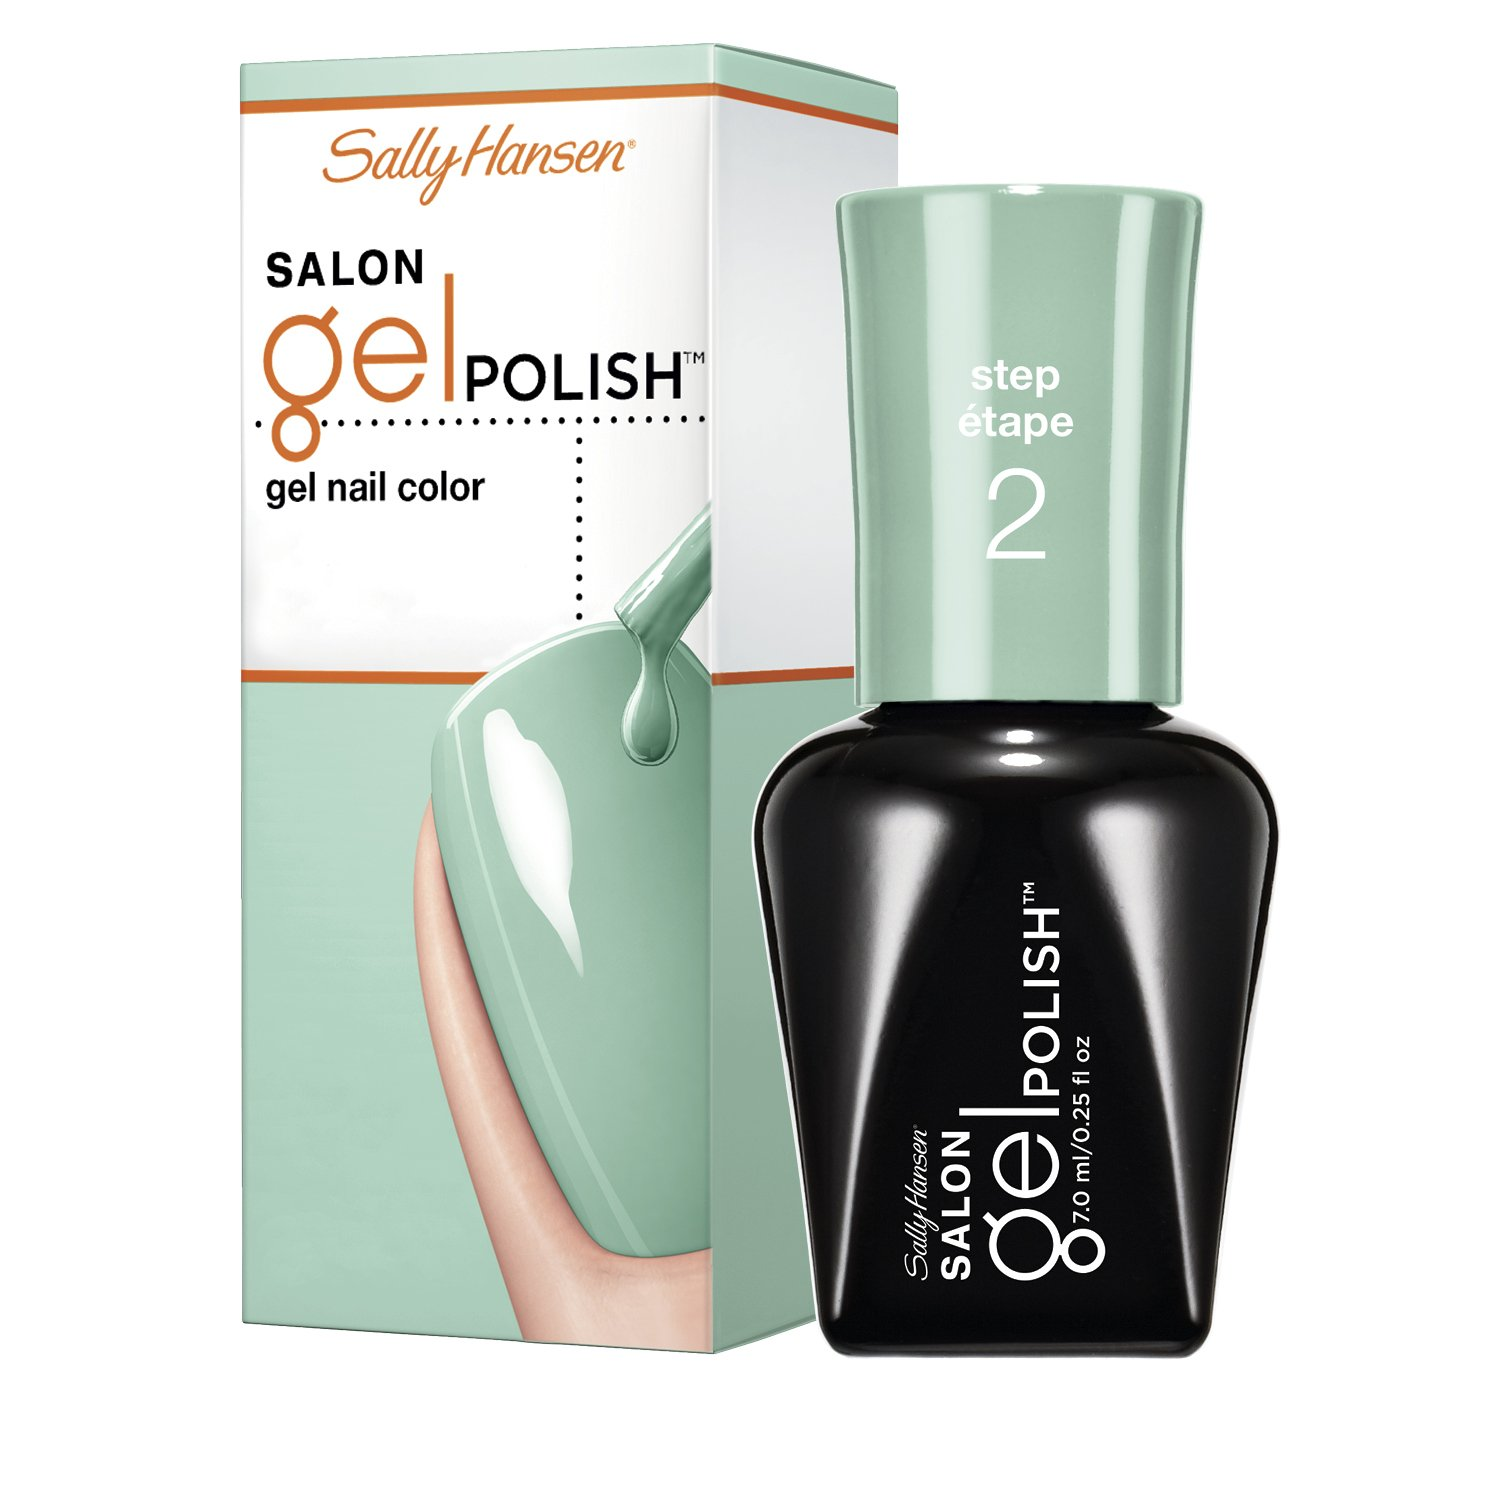 Sally Hansen Salon Pro Gel Jaded, 0.25 Fluid Ounce